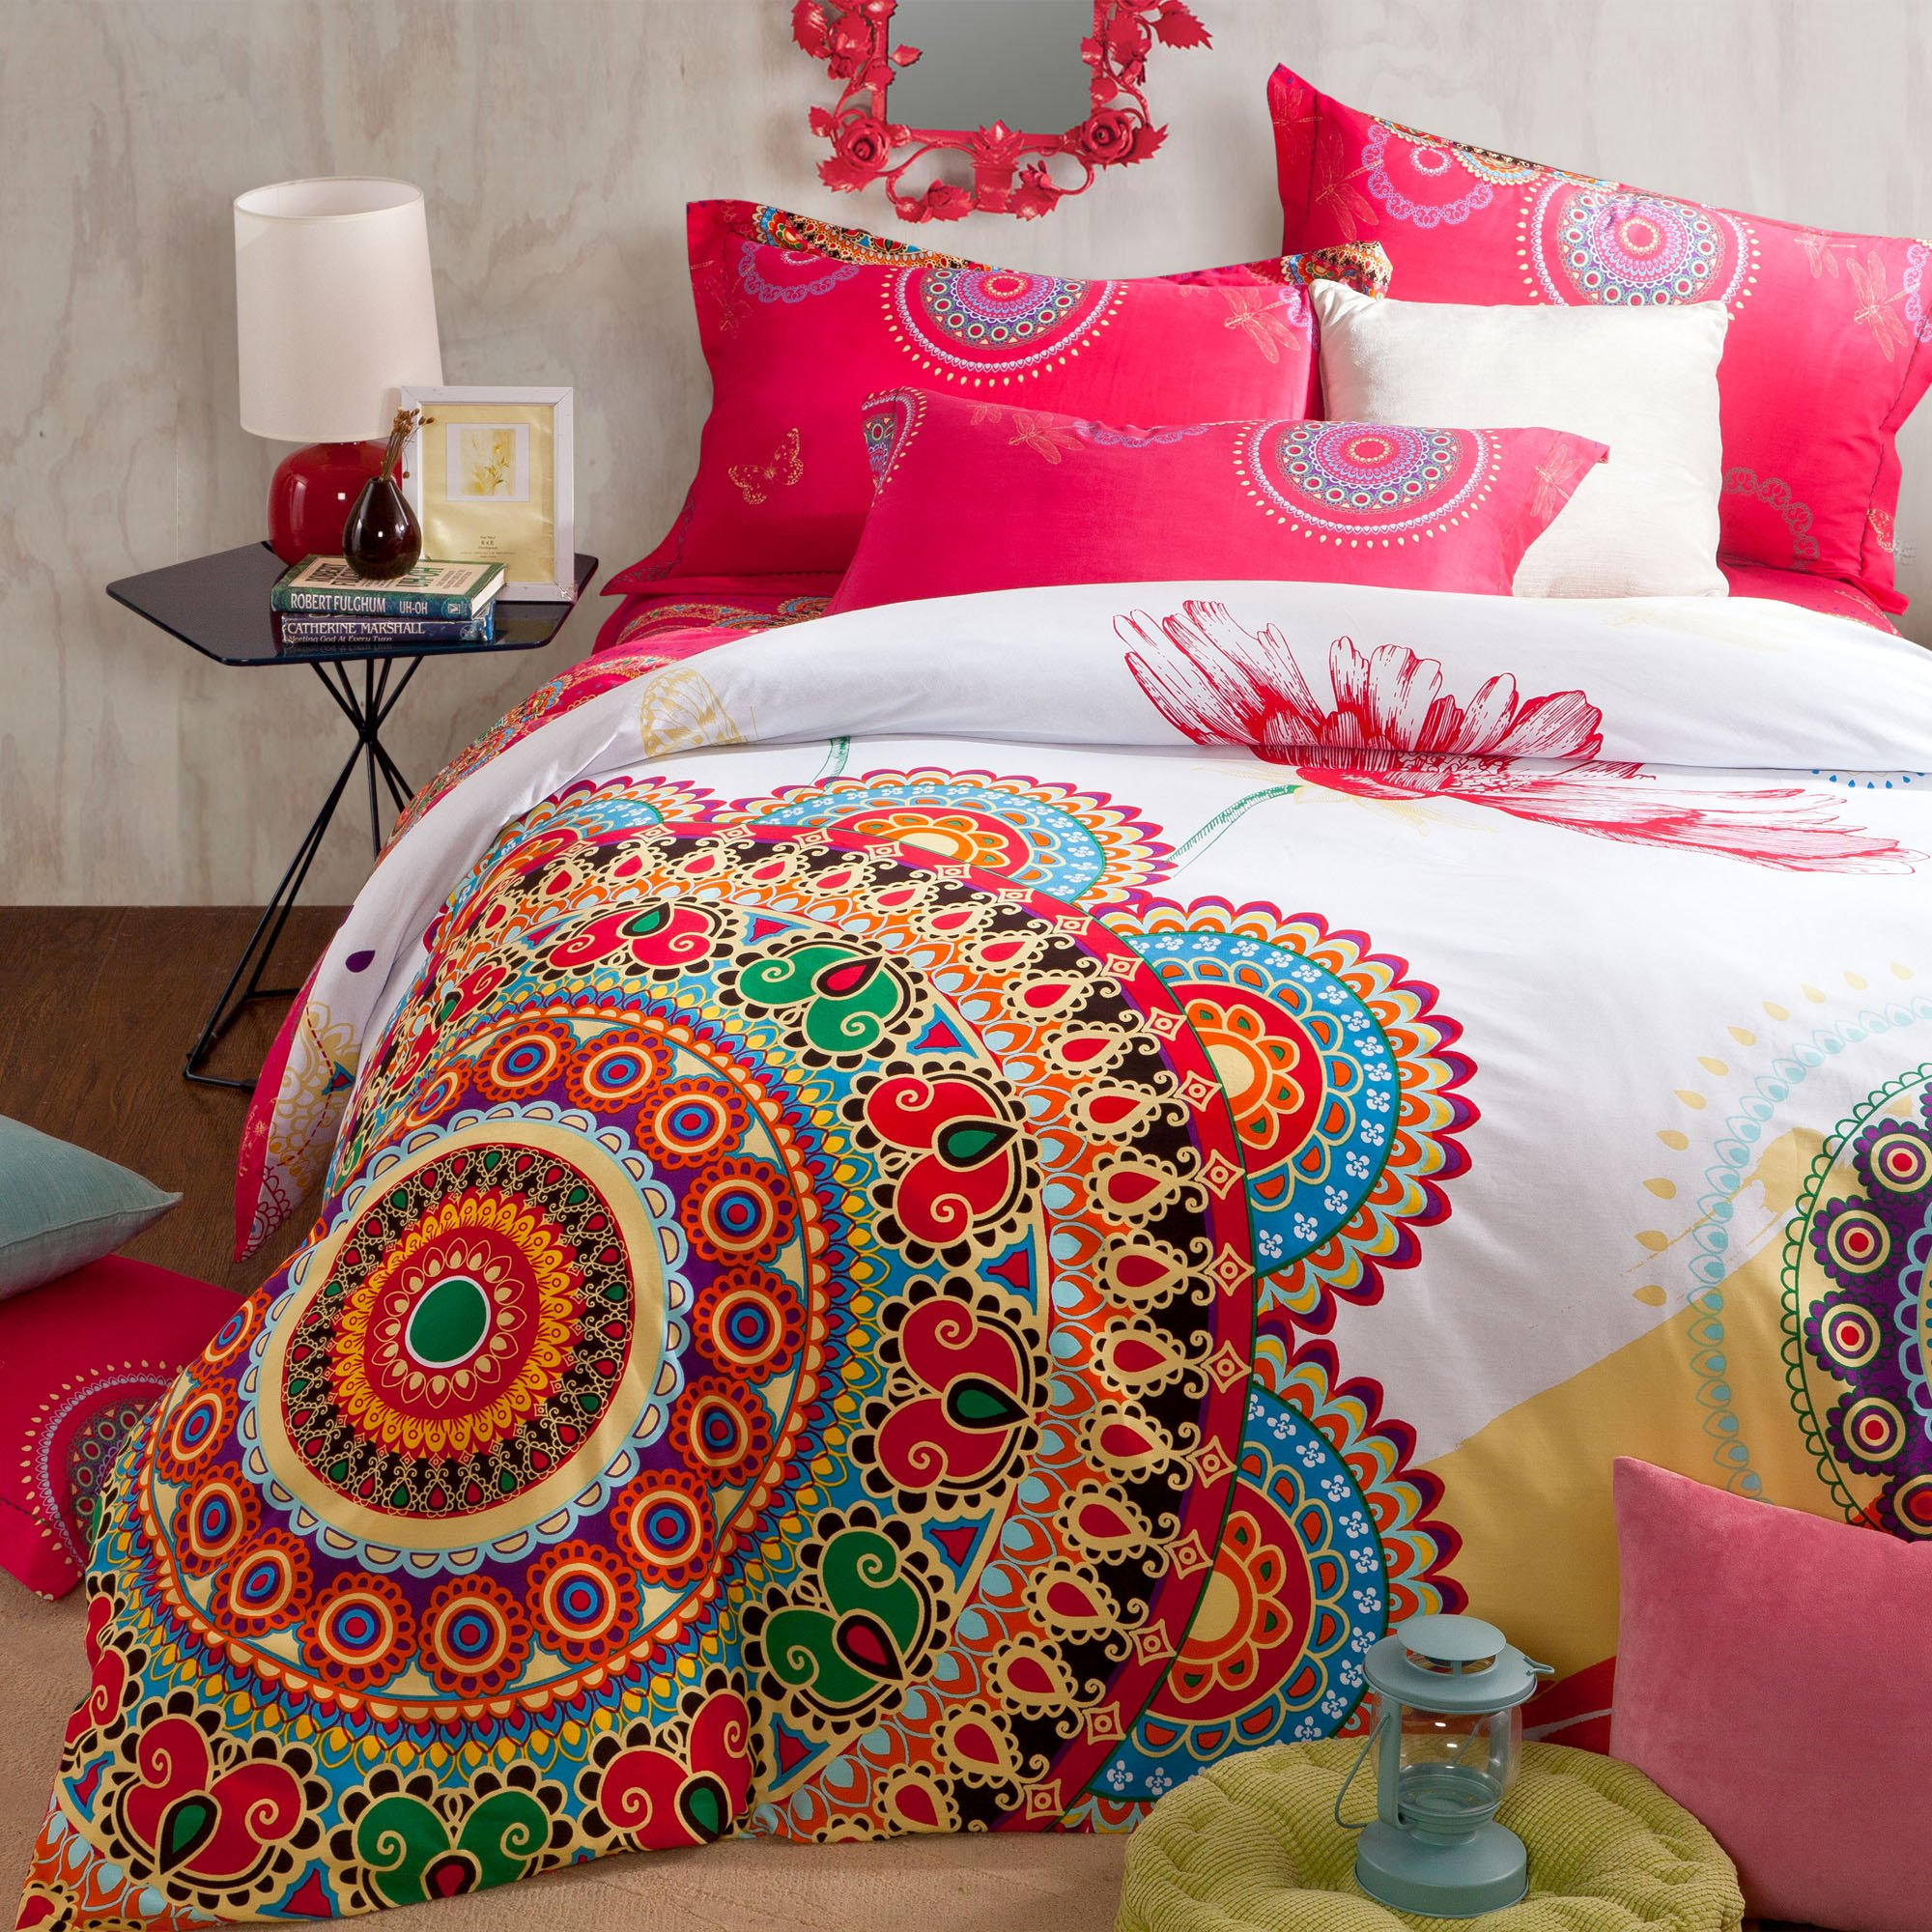 Brandream Boho Bedding Set Bohemian Duvet Covers Queen